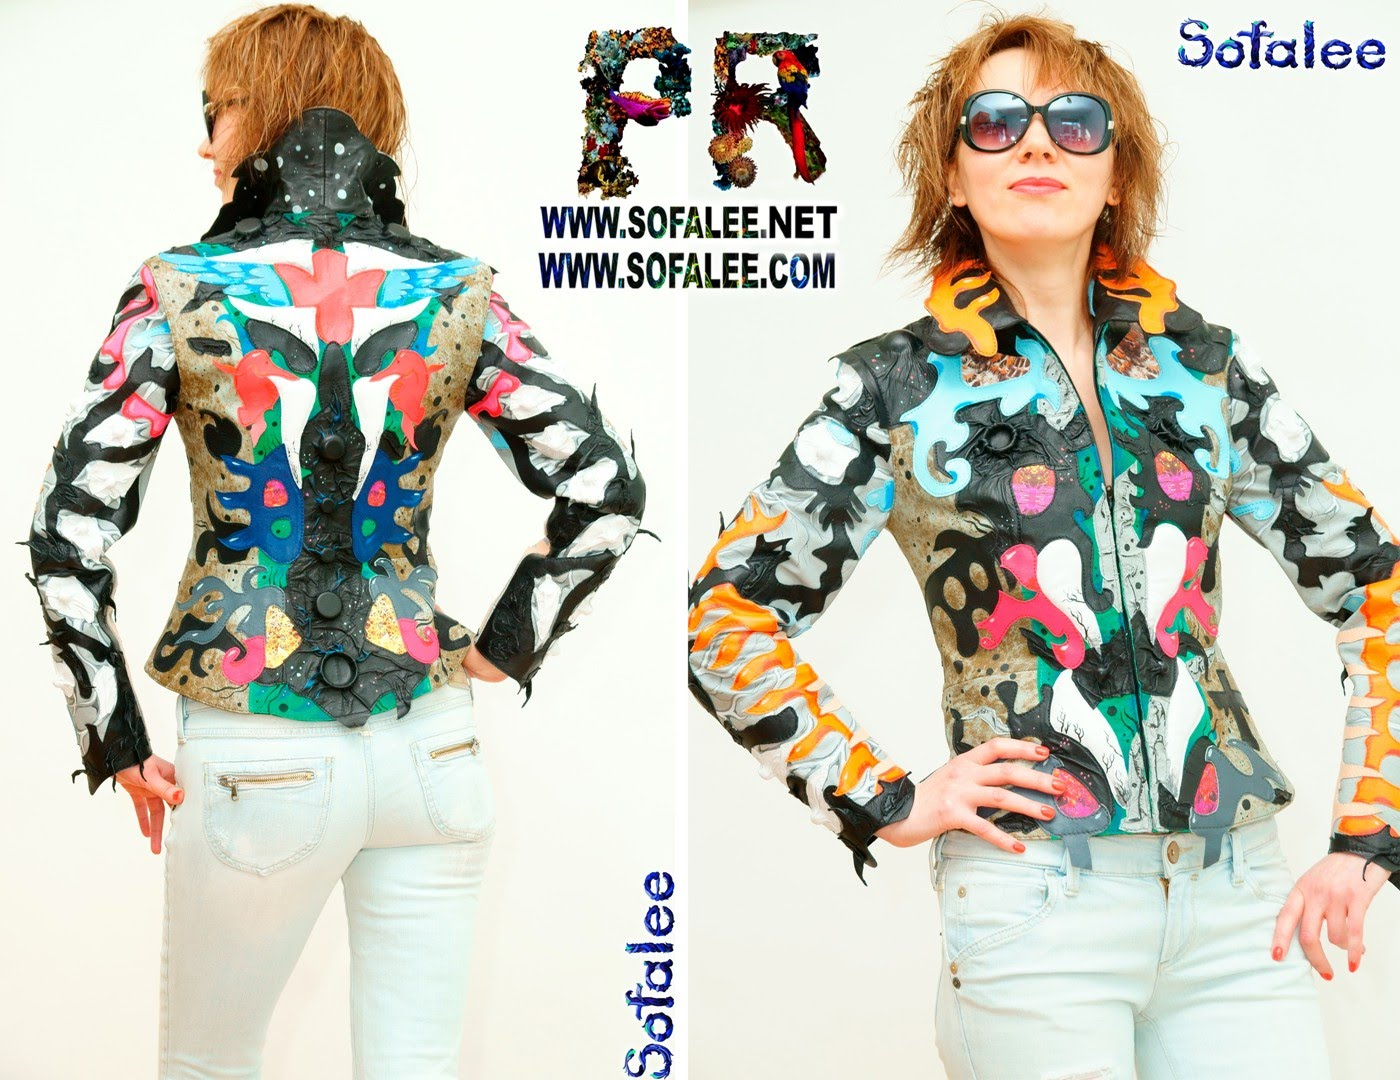 https://sites.google.com/a/sofalee.com/sofalee-genuine-leather-jackets/leather-jackets/no221-women-s-genuine-leather-jacket-multicolored-thoughts-of-colonel/%D0%9A%D1%83%D1%80%D1%82%D0%BA%D0%B0%20%D0%BA%D0%BE%D0%B6%D0%B0%D0%BD%D0%B0%D1%8F%20%D0%B6%D0%B5%D0%BD%D1%81%D0%BA%D0%B0%D1%8F%20%D1%86%D0%B2%D0%B5%D1%82%D0%BD%D0%B0%D1%8F%20%D1%8D%D0%BA%D1%81%D0%BA%D0%BB%D1%8E%D0%B7%D0%B8%D0%B2%D0%BD%D0%B0%D1%8F%20%D0%BC%D0%BE%D0%B4%D0%BD%D0%B0%D1%8F%2001.jpg?attredirects=0